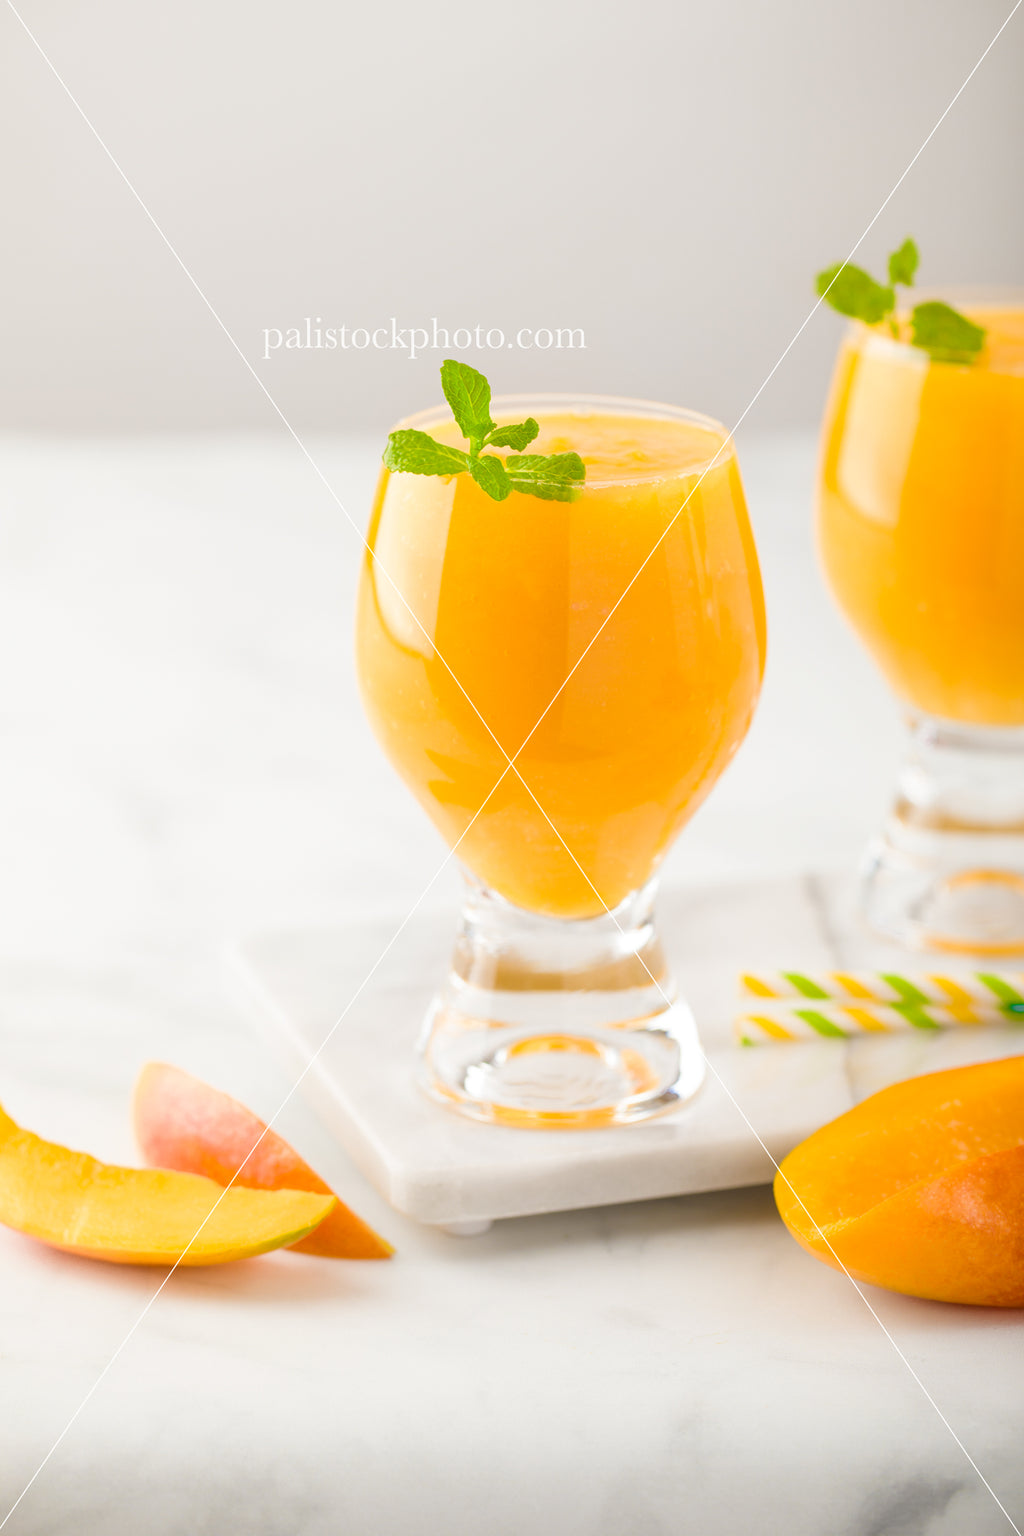 Mango Smoothie With Mint Leaves and Mango Slices